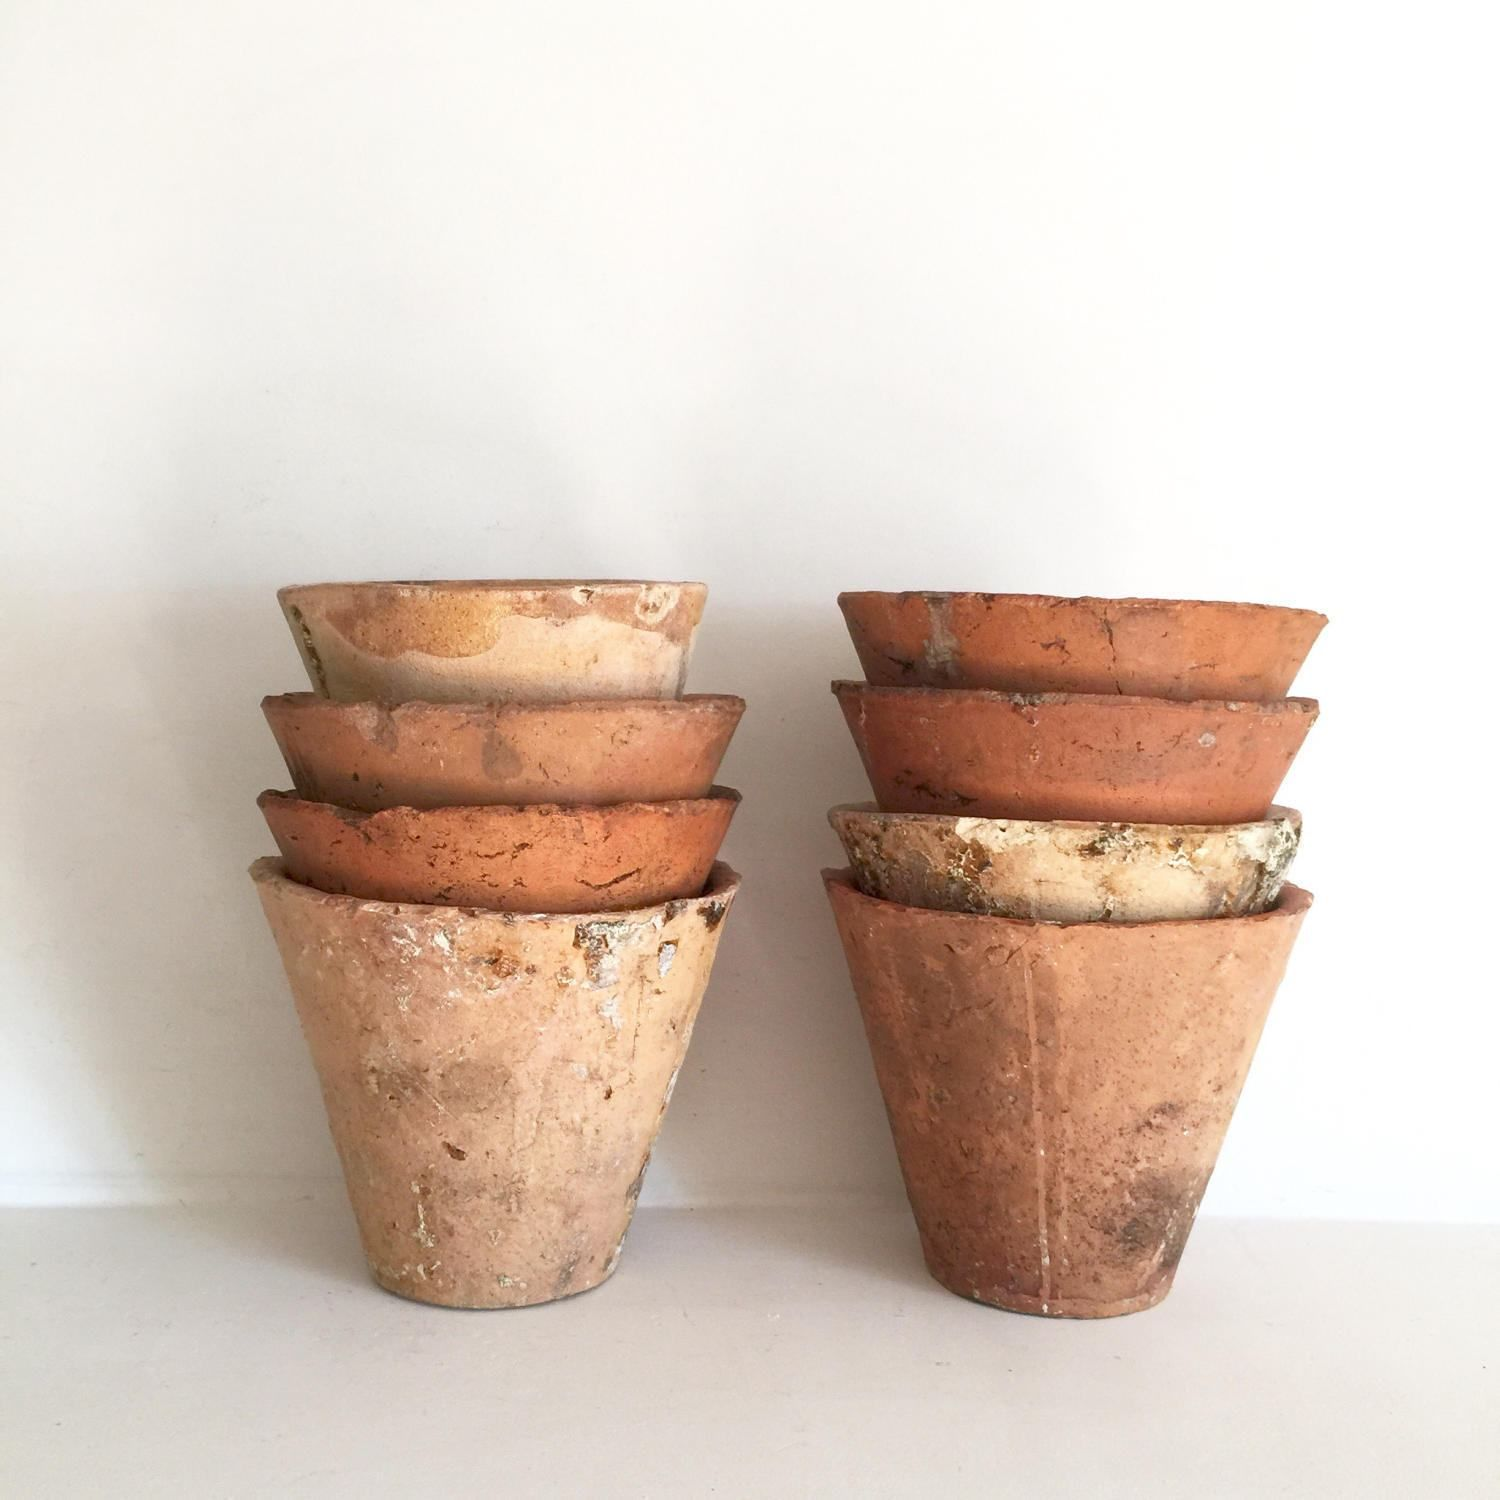 French Resin Pots Antique French Pots Small Terracotta Pots Rustic Pots French Garden Pots Earthe Antique Terra Cotta Pots French Pot French Antiques